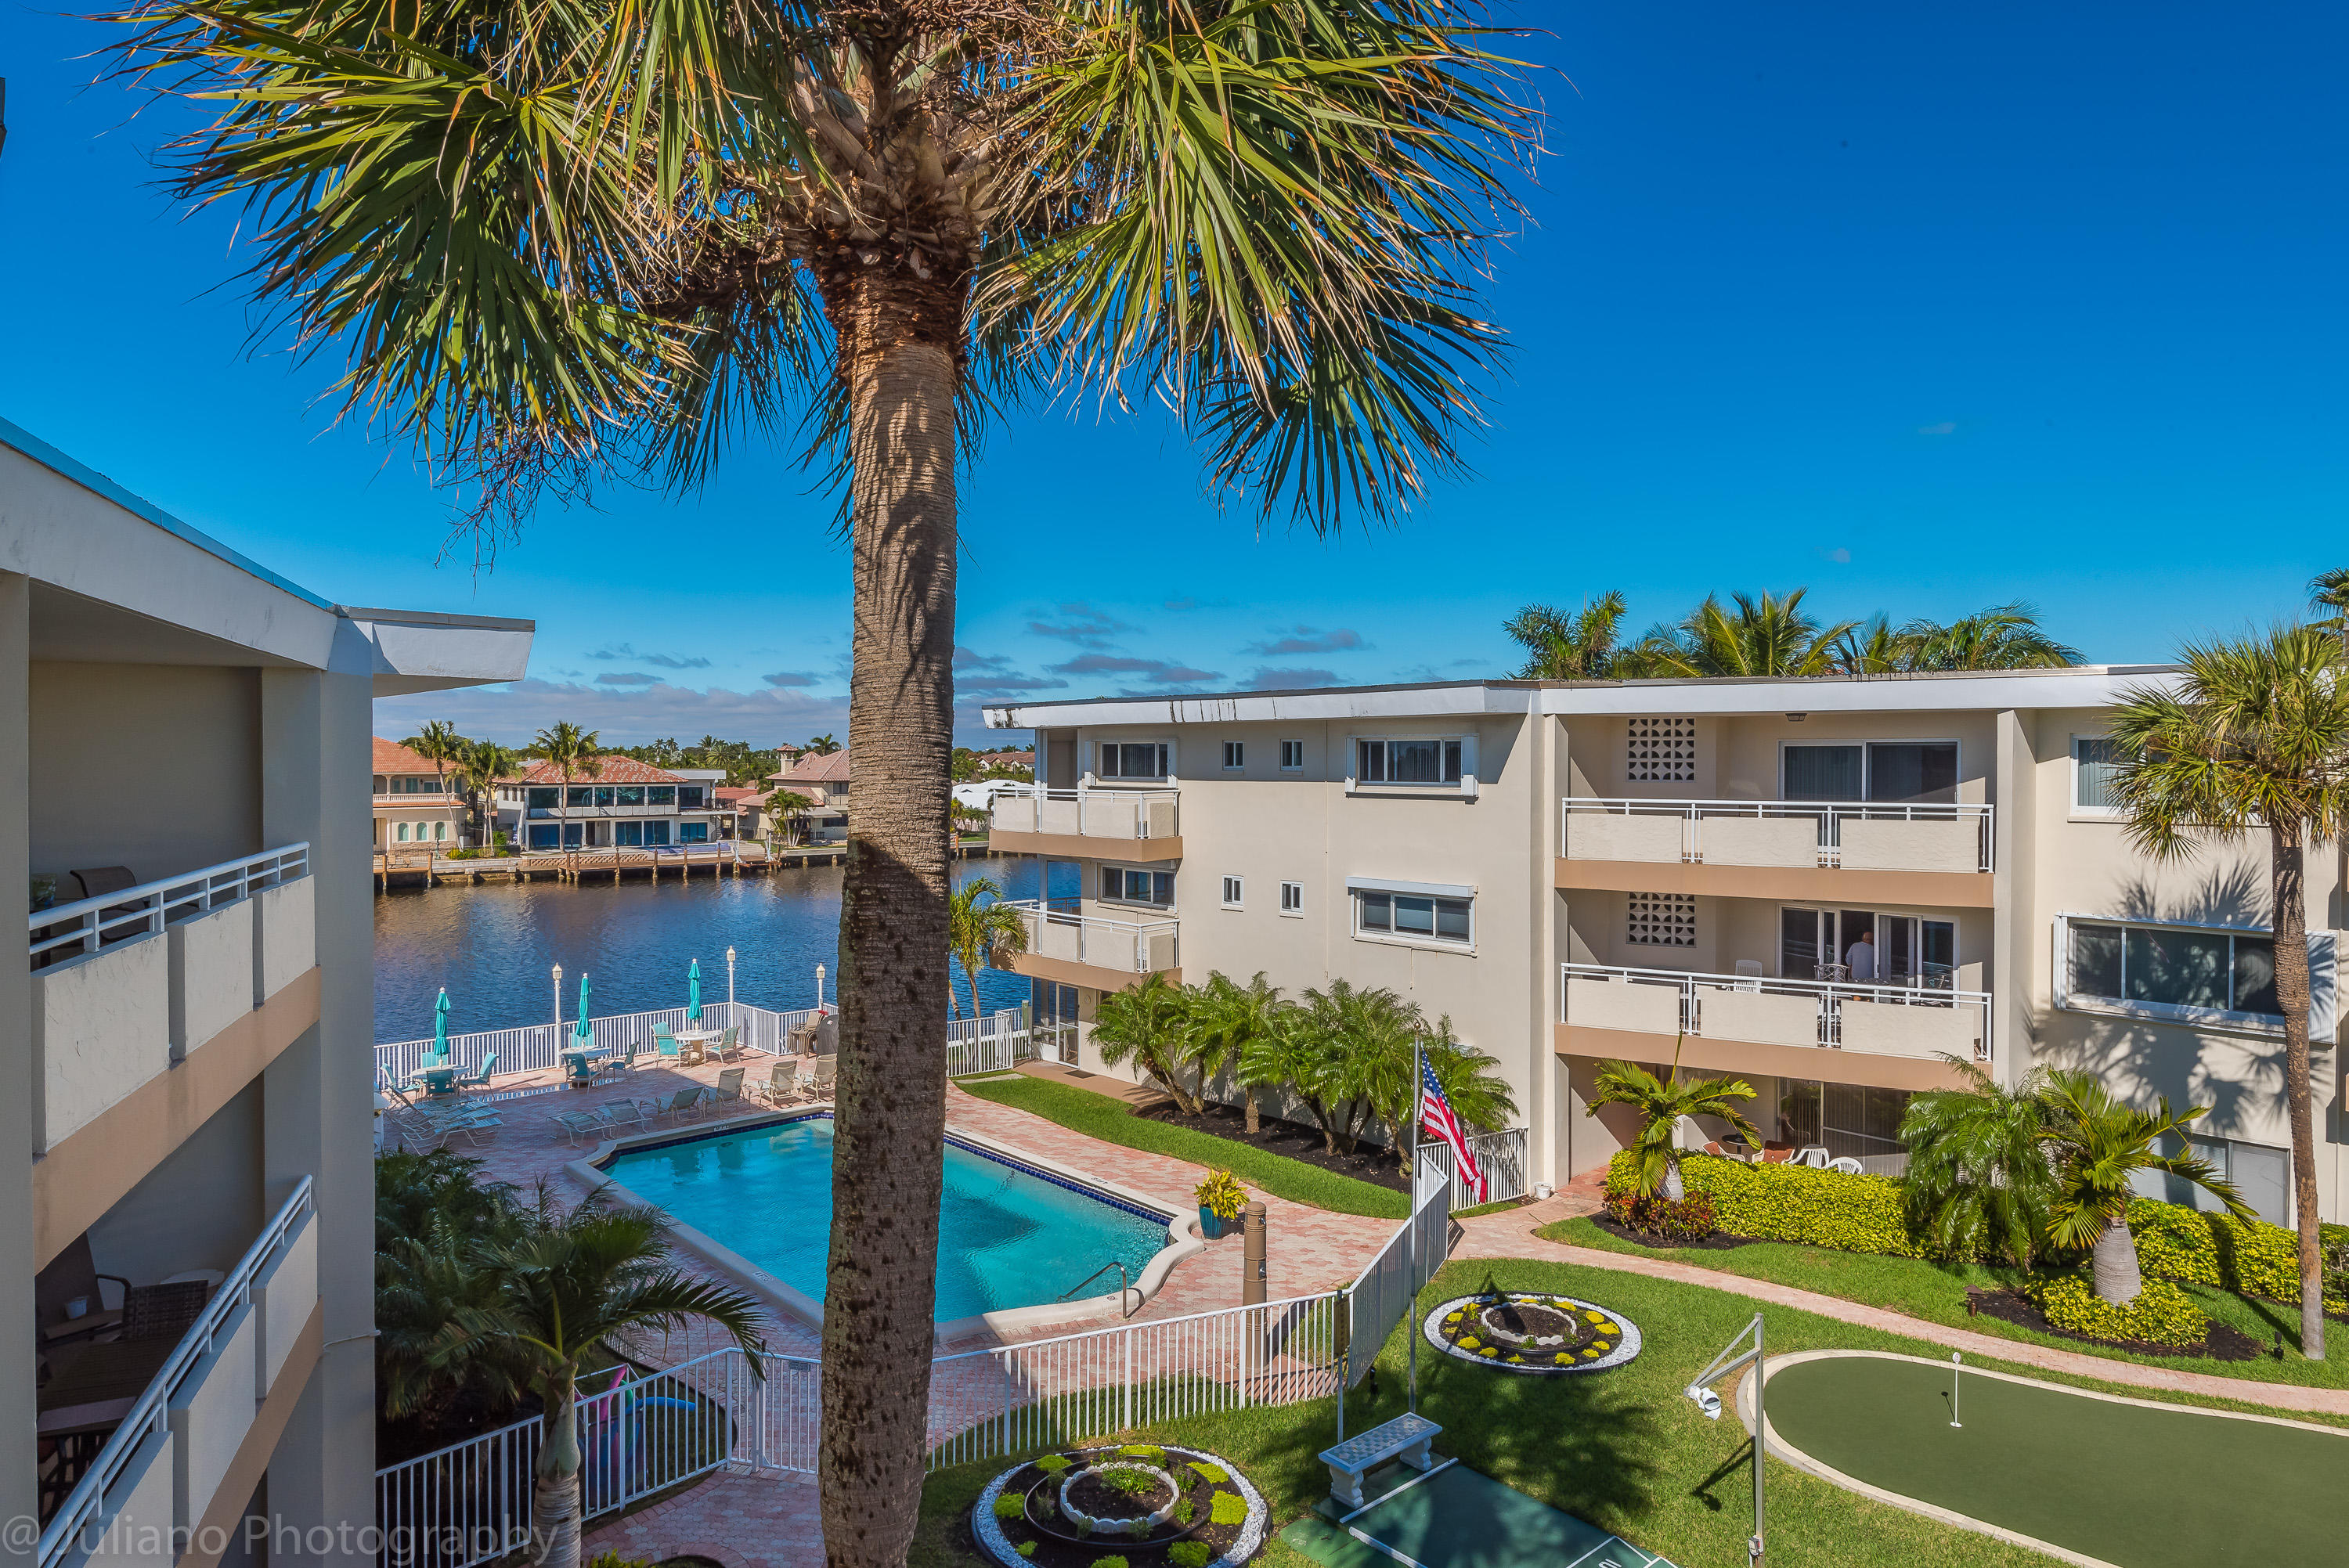 1198 Hillsboro Mile, Hillsboro Beach, Florida 33062, 2 Bedrooms Bedrooms, ,2 BathroomsBathrooms,Condo/Coop,For Sale,Hillsboro Mile,3,RX-10500365